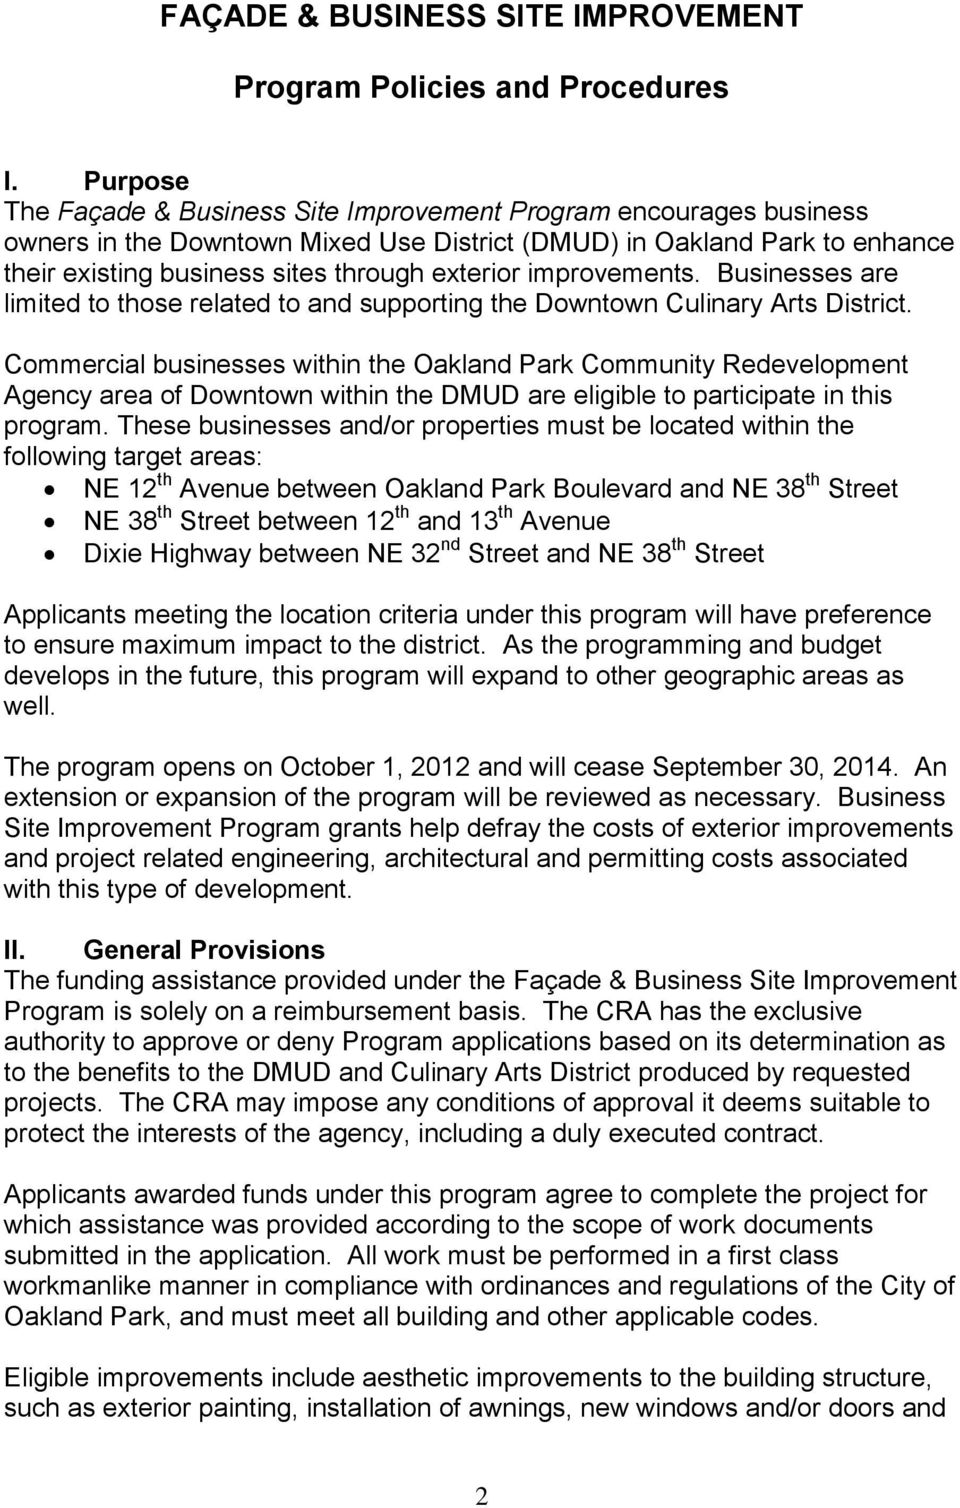 improvements. Businesses are limited to those related to and supporting the Downtown Culinary Arts District.